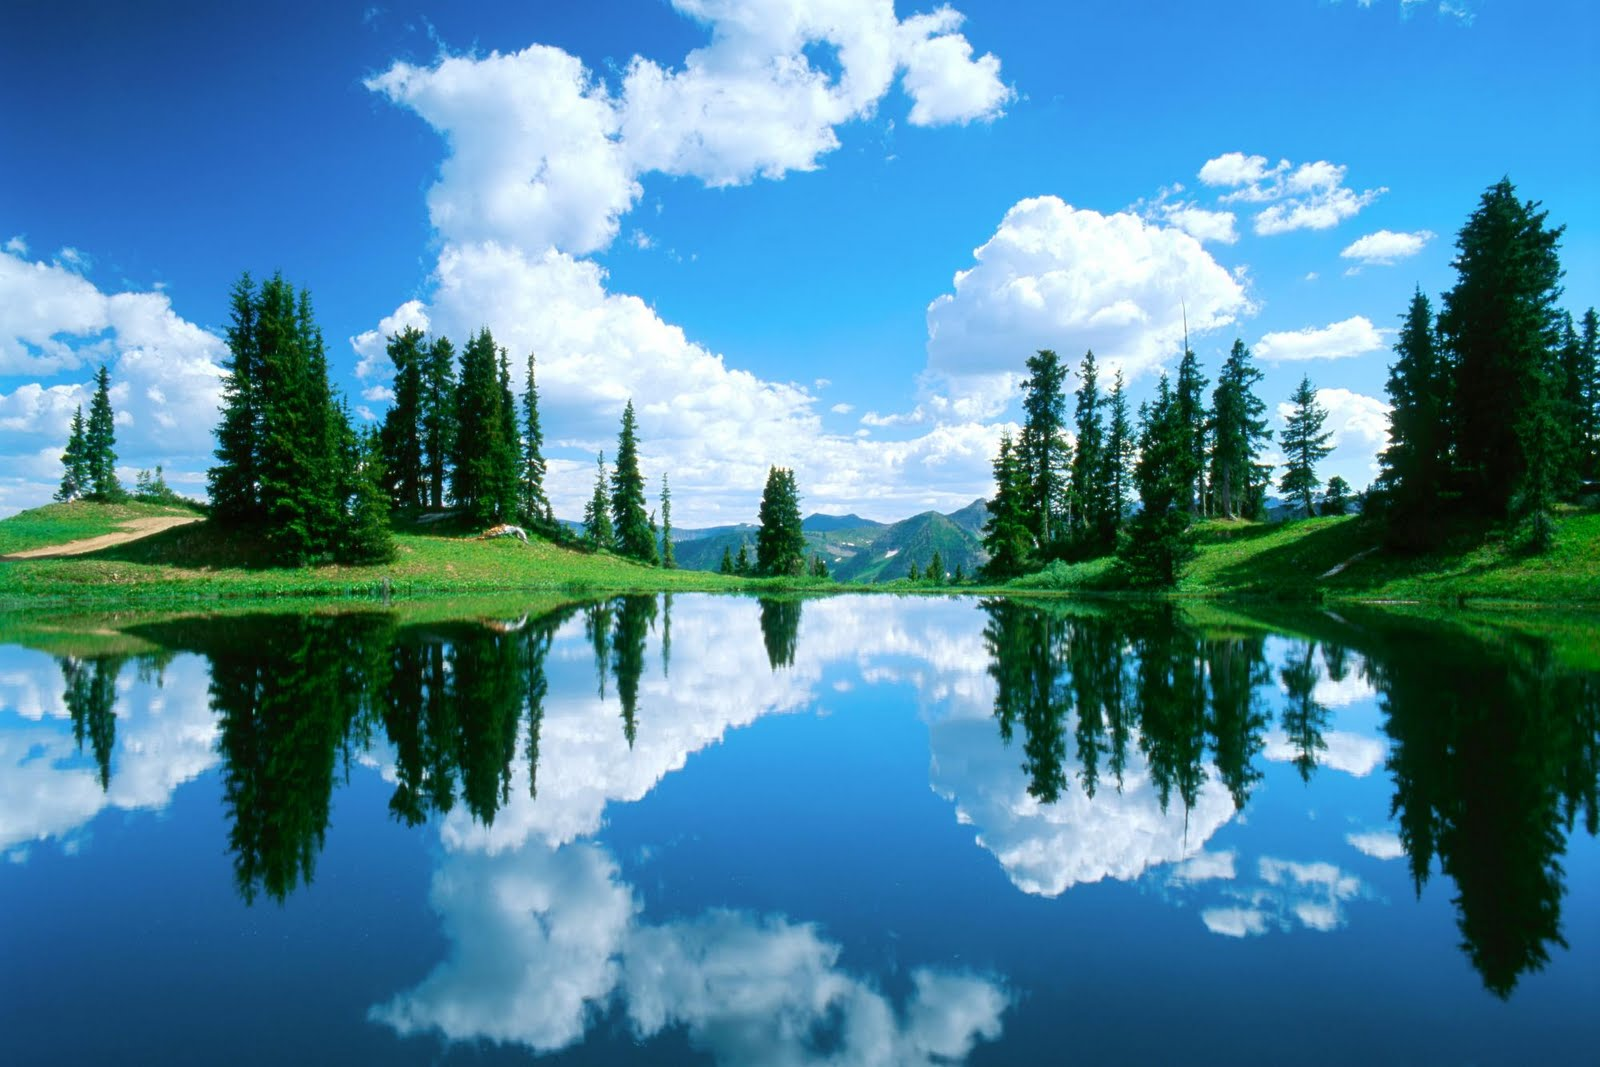 Reflections on Water Stunning HD Nature Wallpapers ...